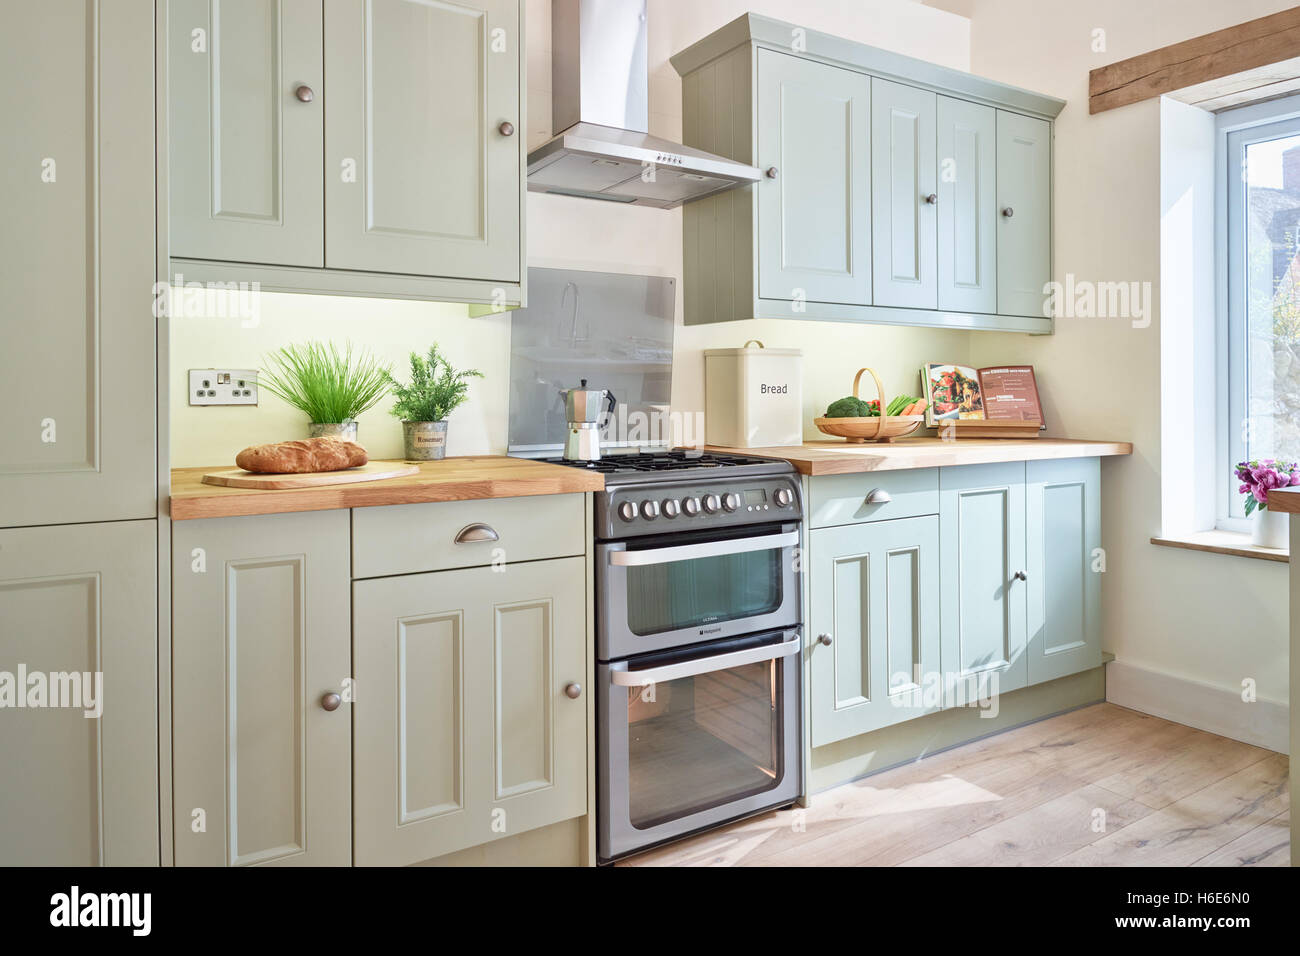 A contemporary, fresh open plan kitchen incorporating an integrated oven, cooker, hood & wood work surfaces. - Stock Image